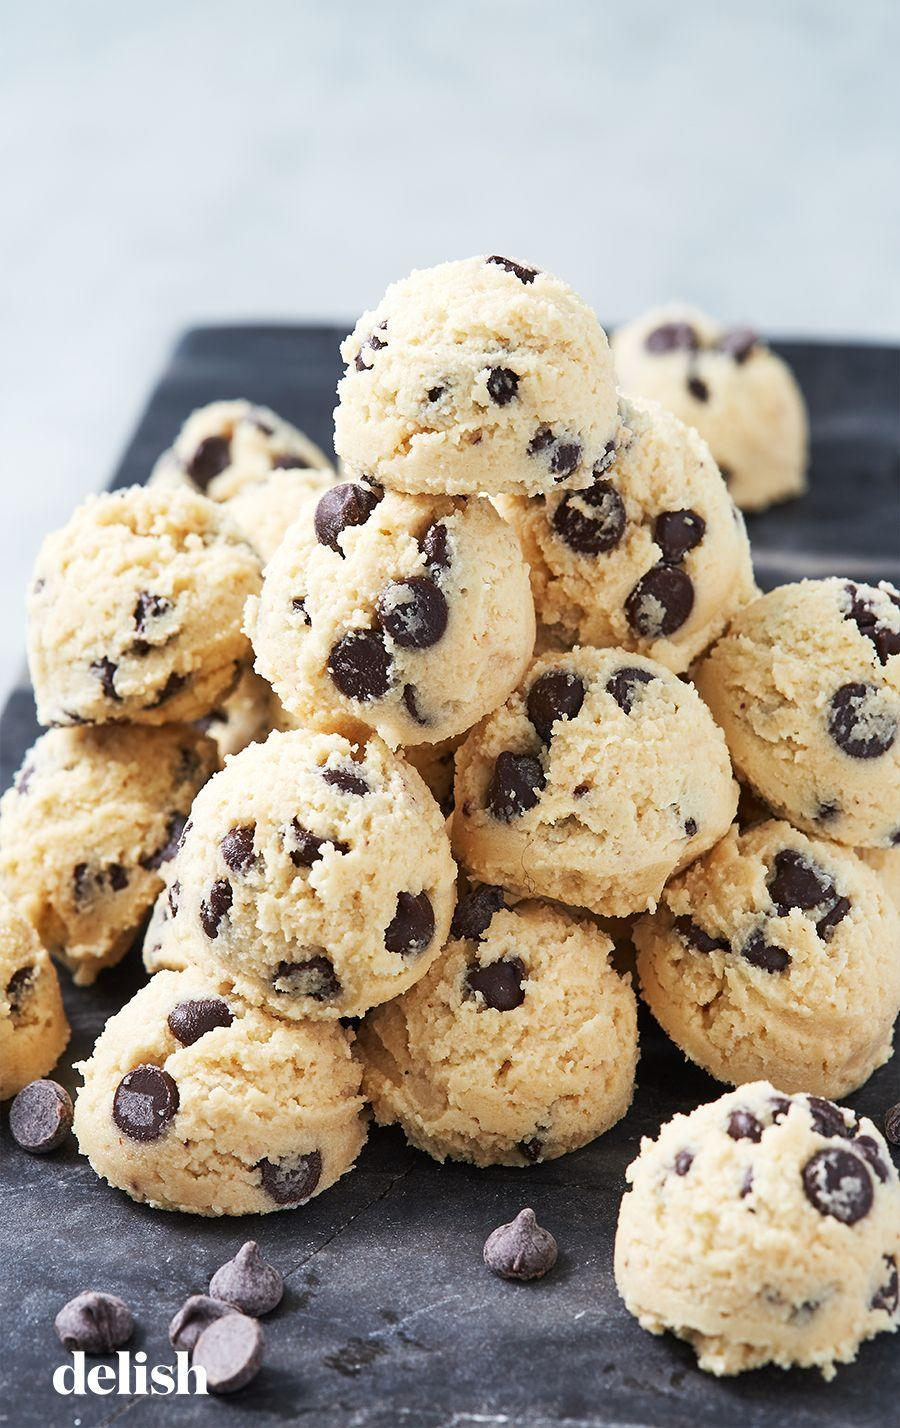 """<p>Because there's no one else you'd rather eat raw cookie dough with.</p><p>Get the recipe from <a href=""""https://www.delish.com/cooking/recipe-ideas/a19756323/cookie-dough-keto-fat-bombs-recipe/"""" rel=""""nofollow noopener"""" target=""""_blank"""" data-ylk=""""slk:Delish"""" class=""""link rapid-noclick-resp"""">Delish</a>. </p>"""